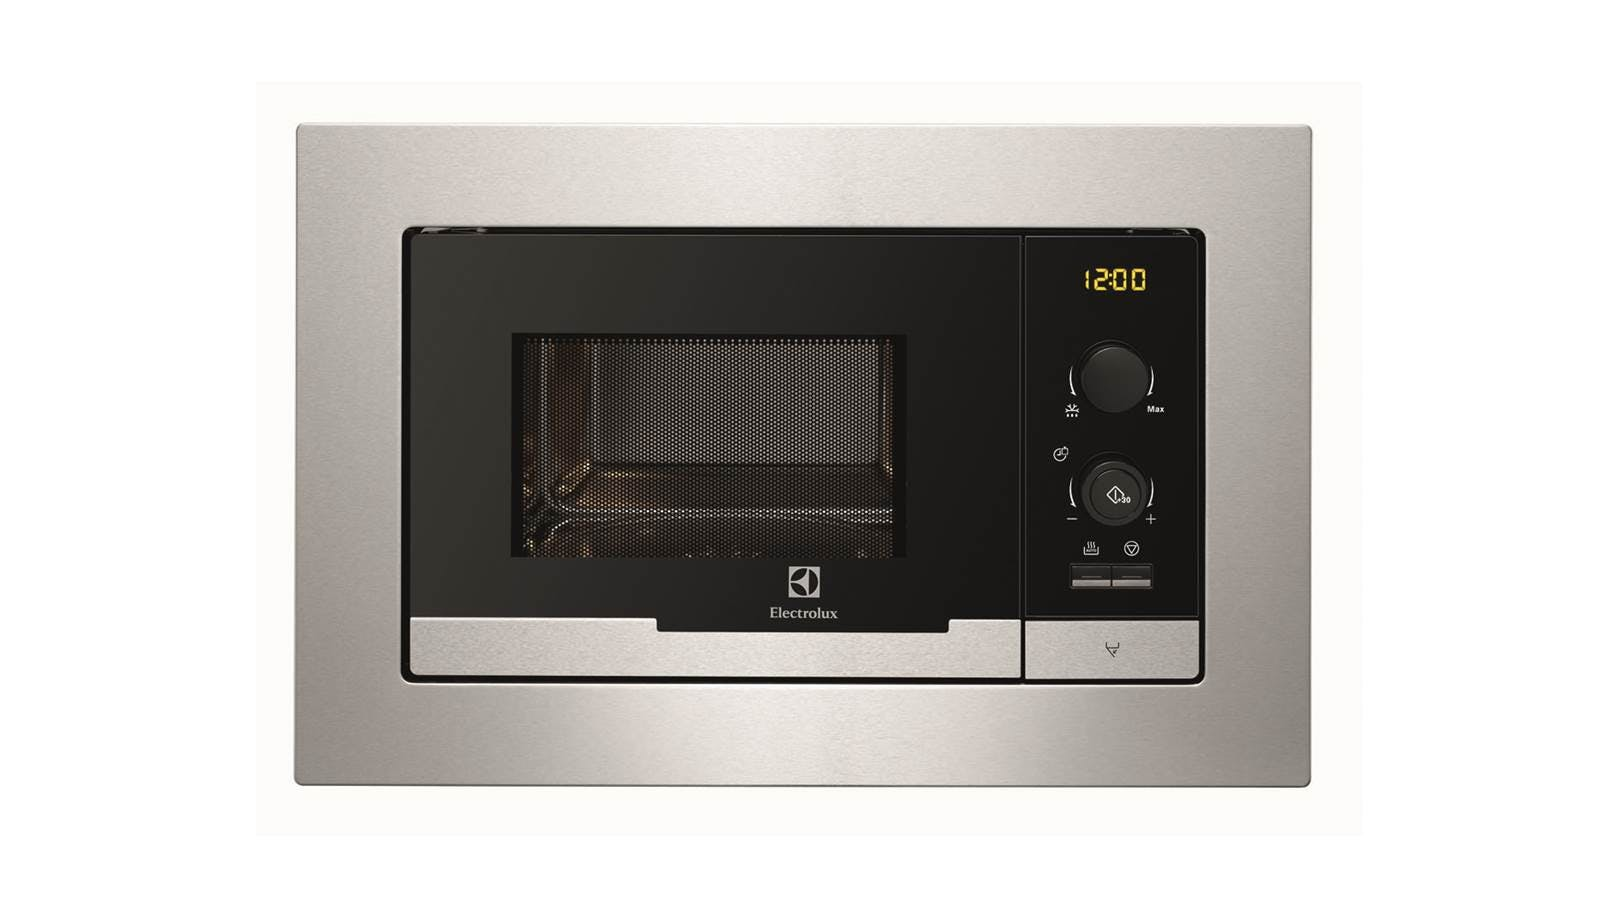 Electrolux 20l Built In Microwave Oven With Grill